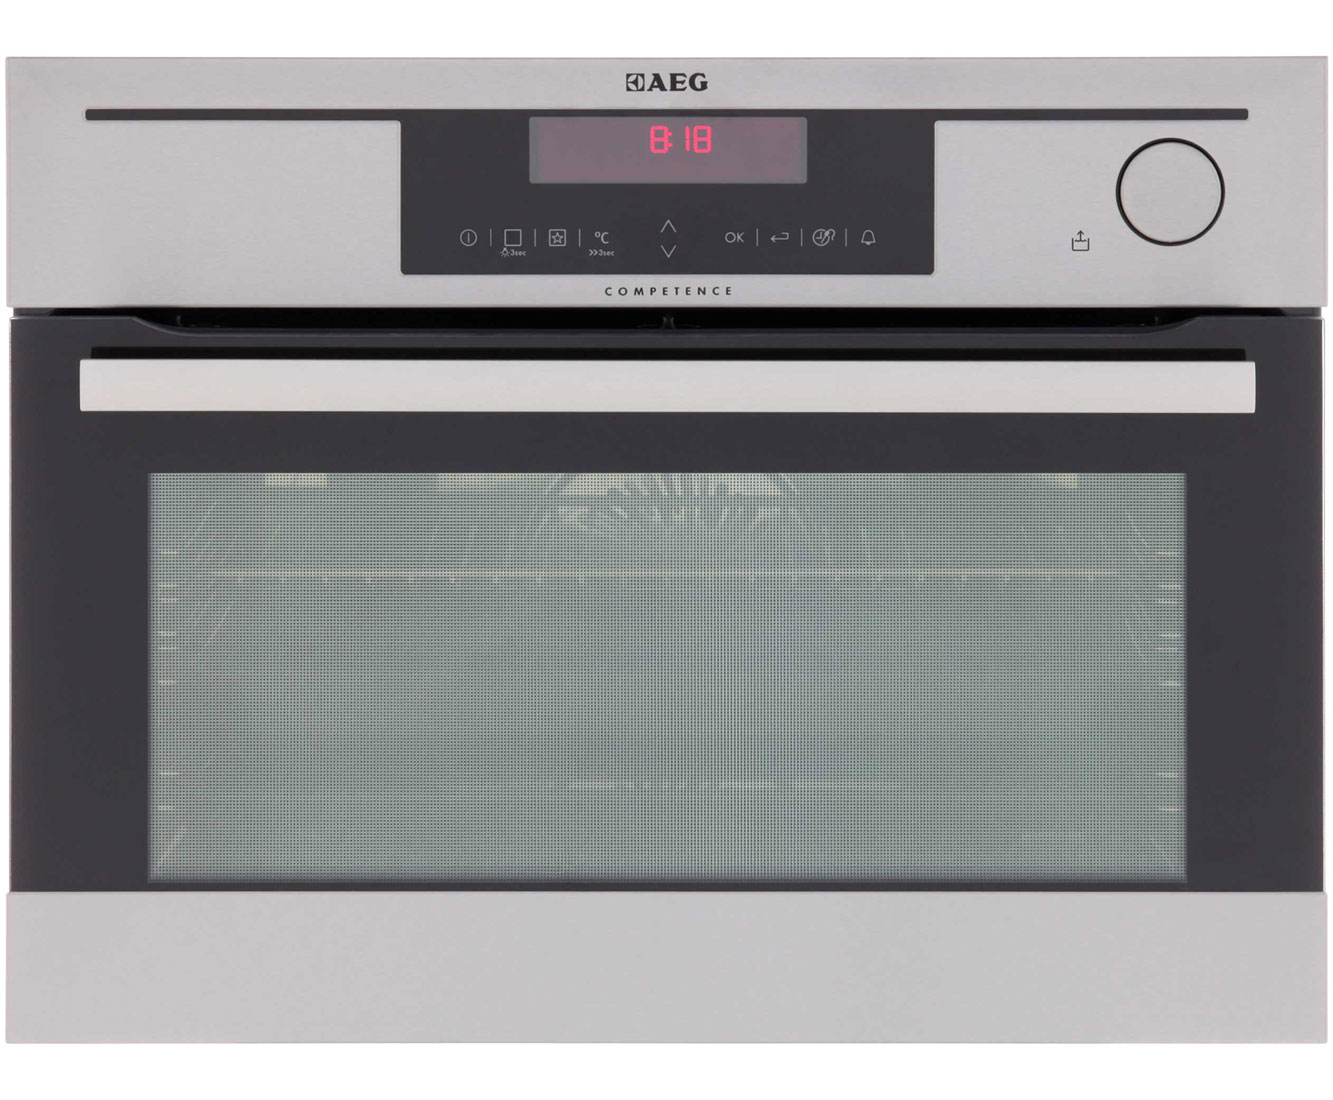 AEG Competence KS8404021M Built In Electric Single Oven with added Steam Function - Stainless Steel